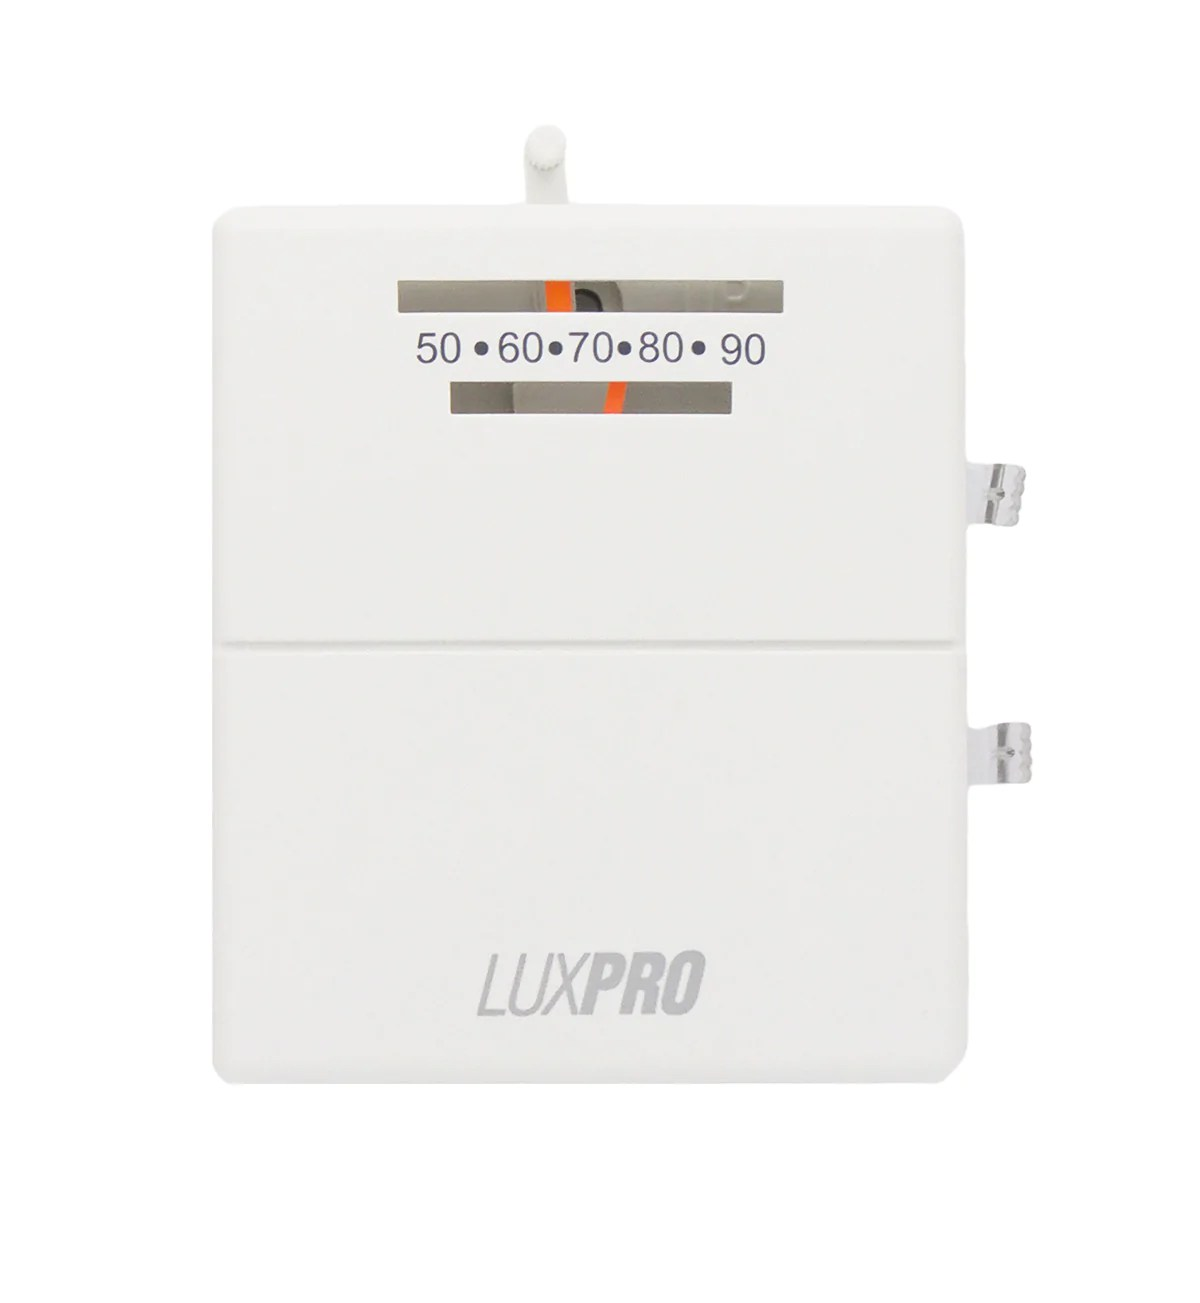 hight resolution of luxpro psm40sa mechanical snap action 2 wire heat only thermostat lennox thermostat wiring diagram luxpro thermostat 2wire wiring diagram